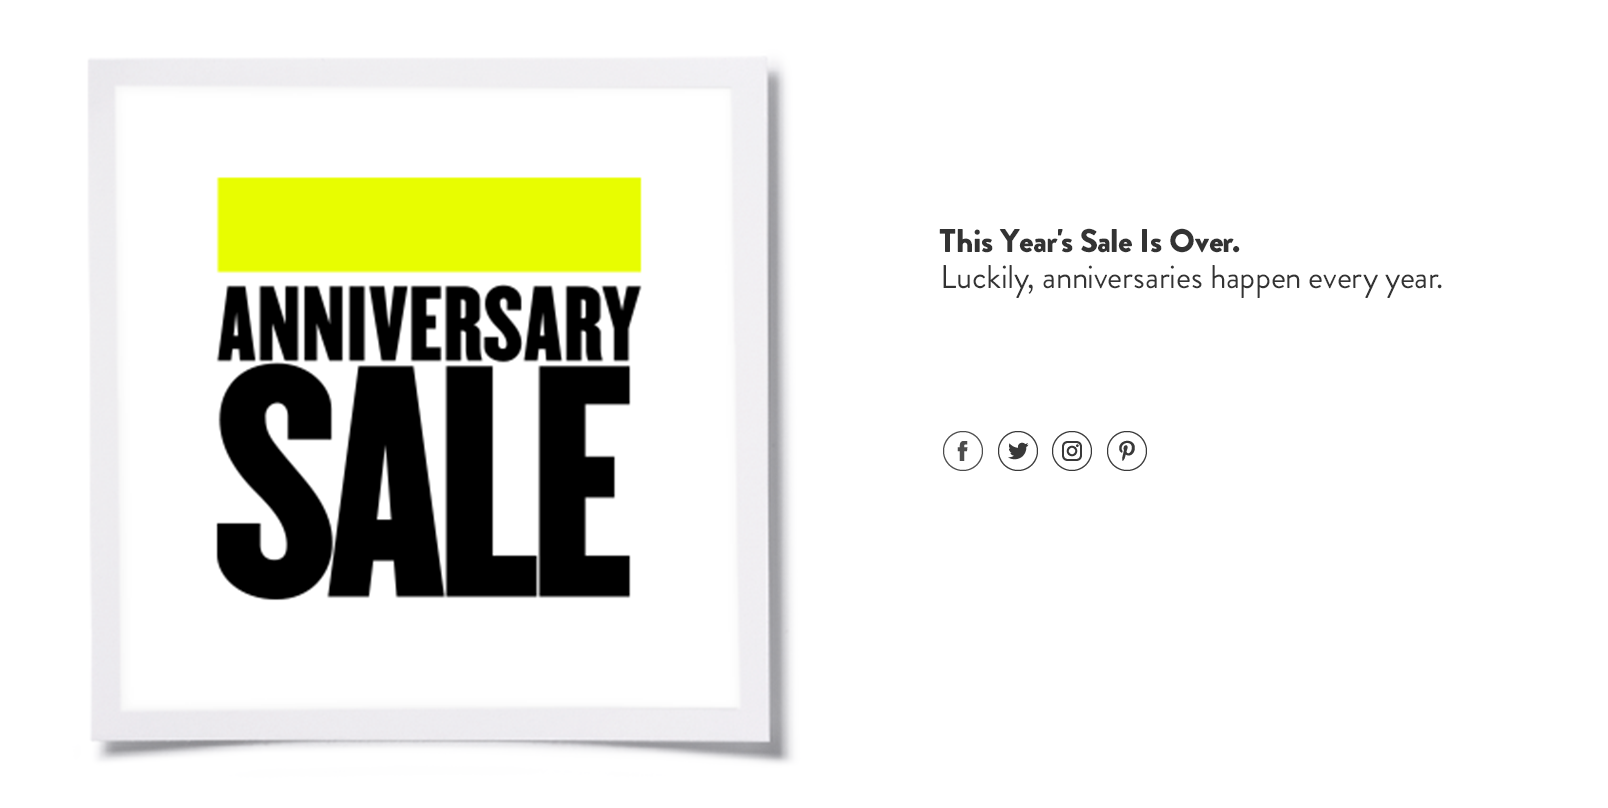 Anniversary Sale is over this year. But meet us right here next year.